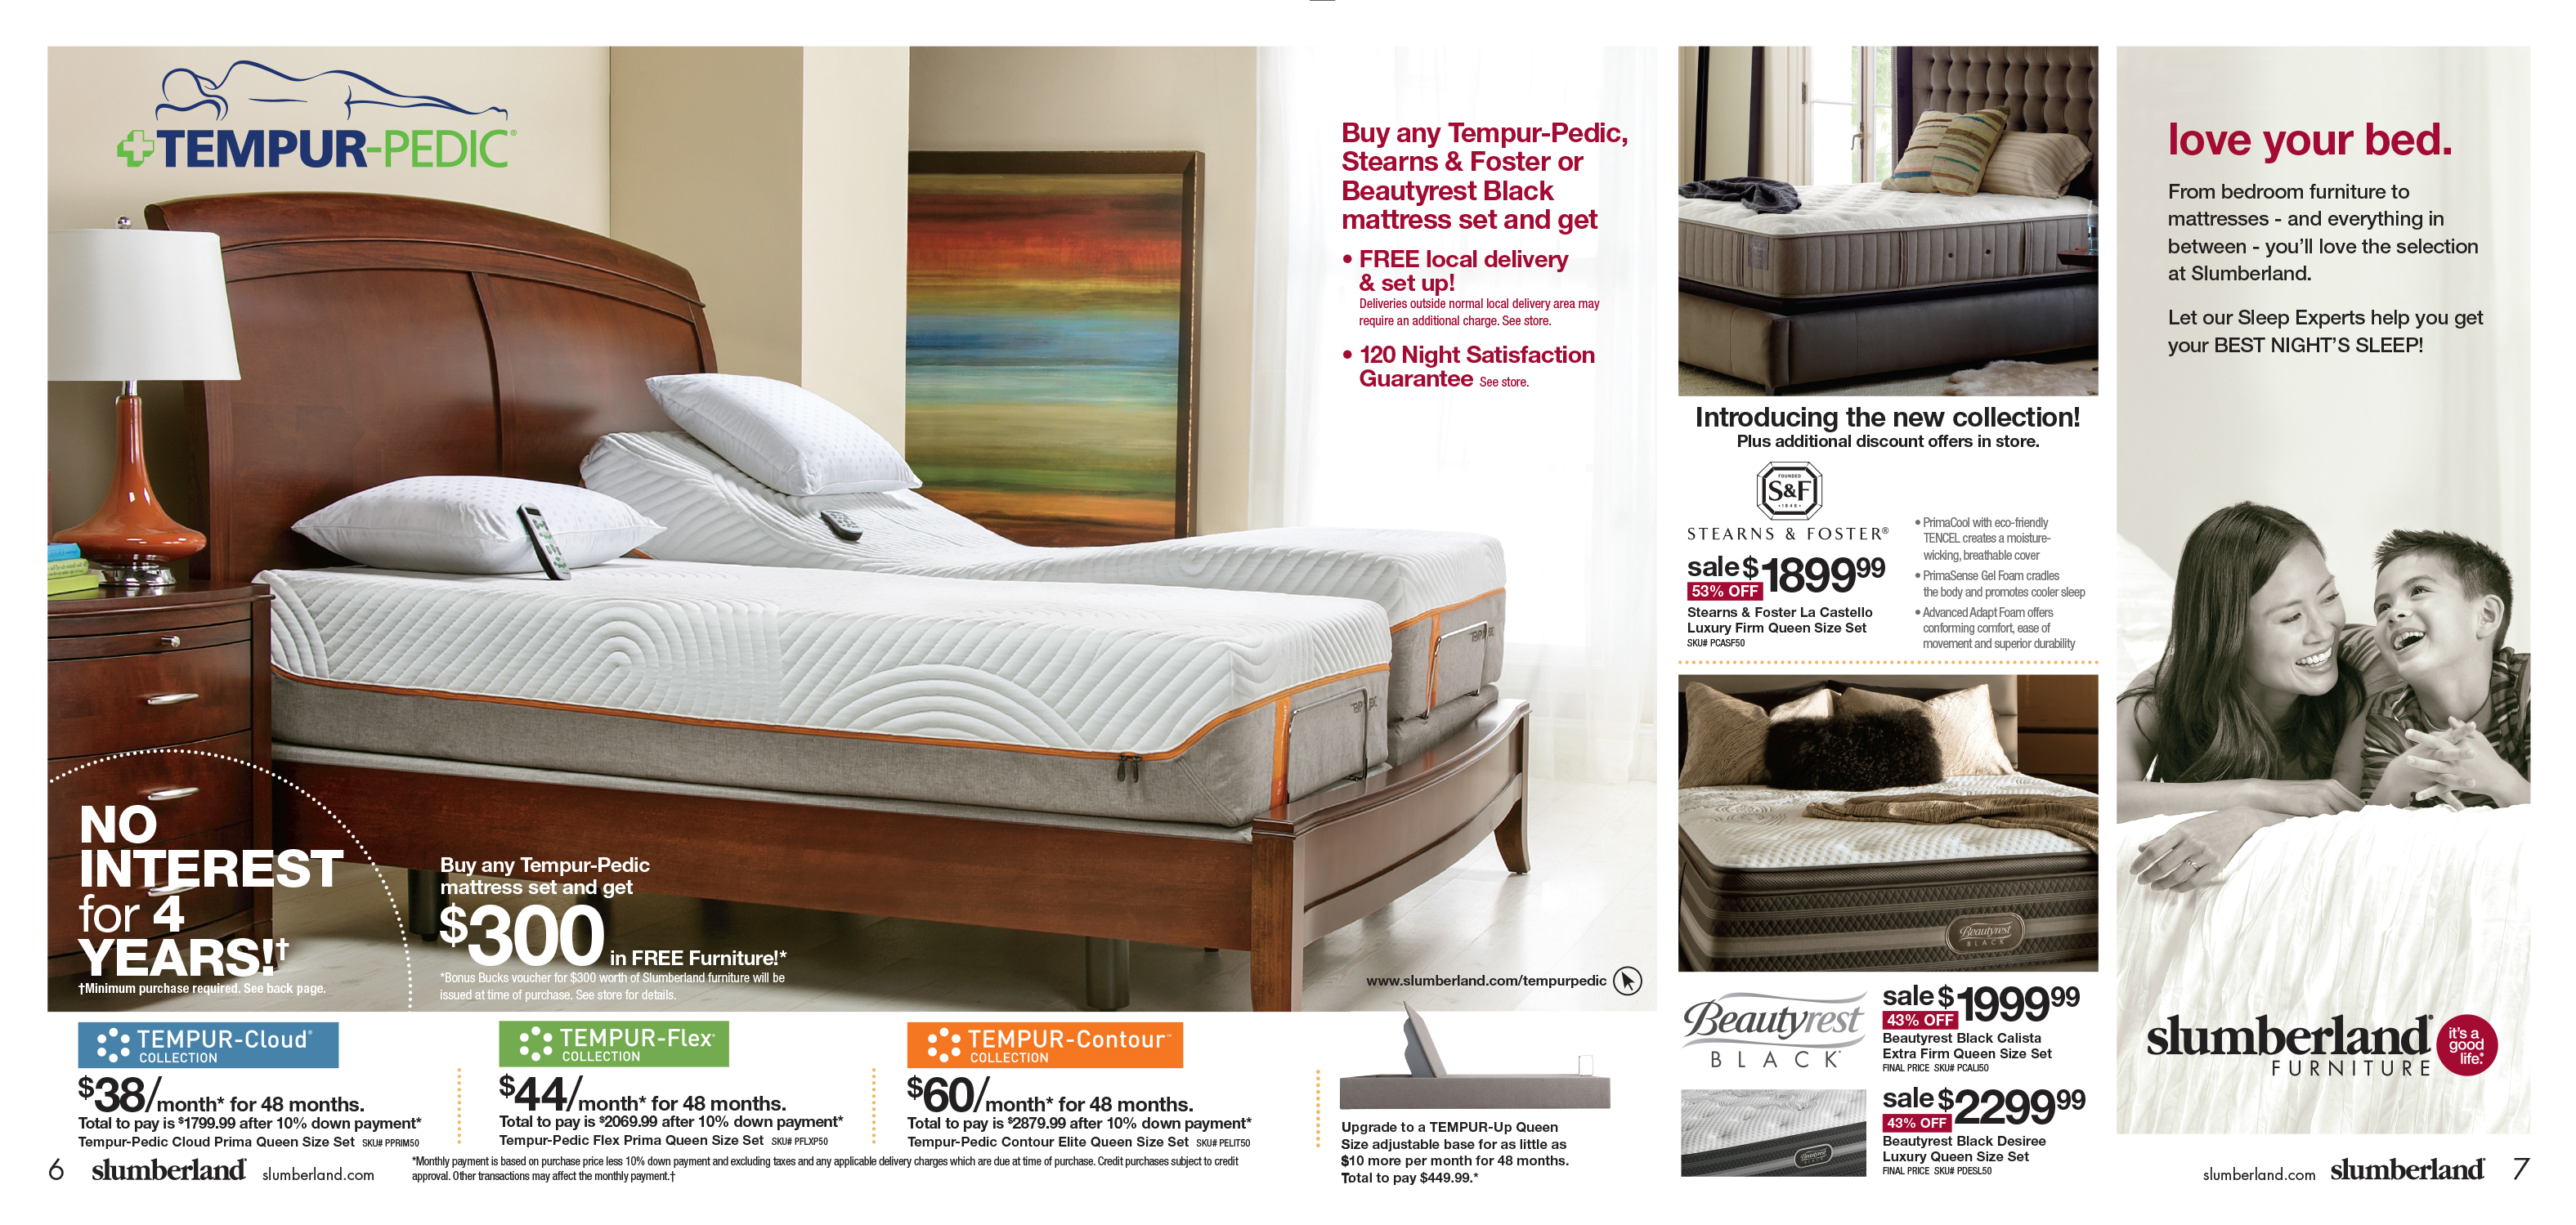 comforter contour mattresses tempur luxe shop image breeze bedzzz from comfort pedic express